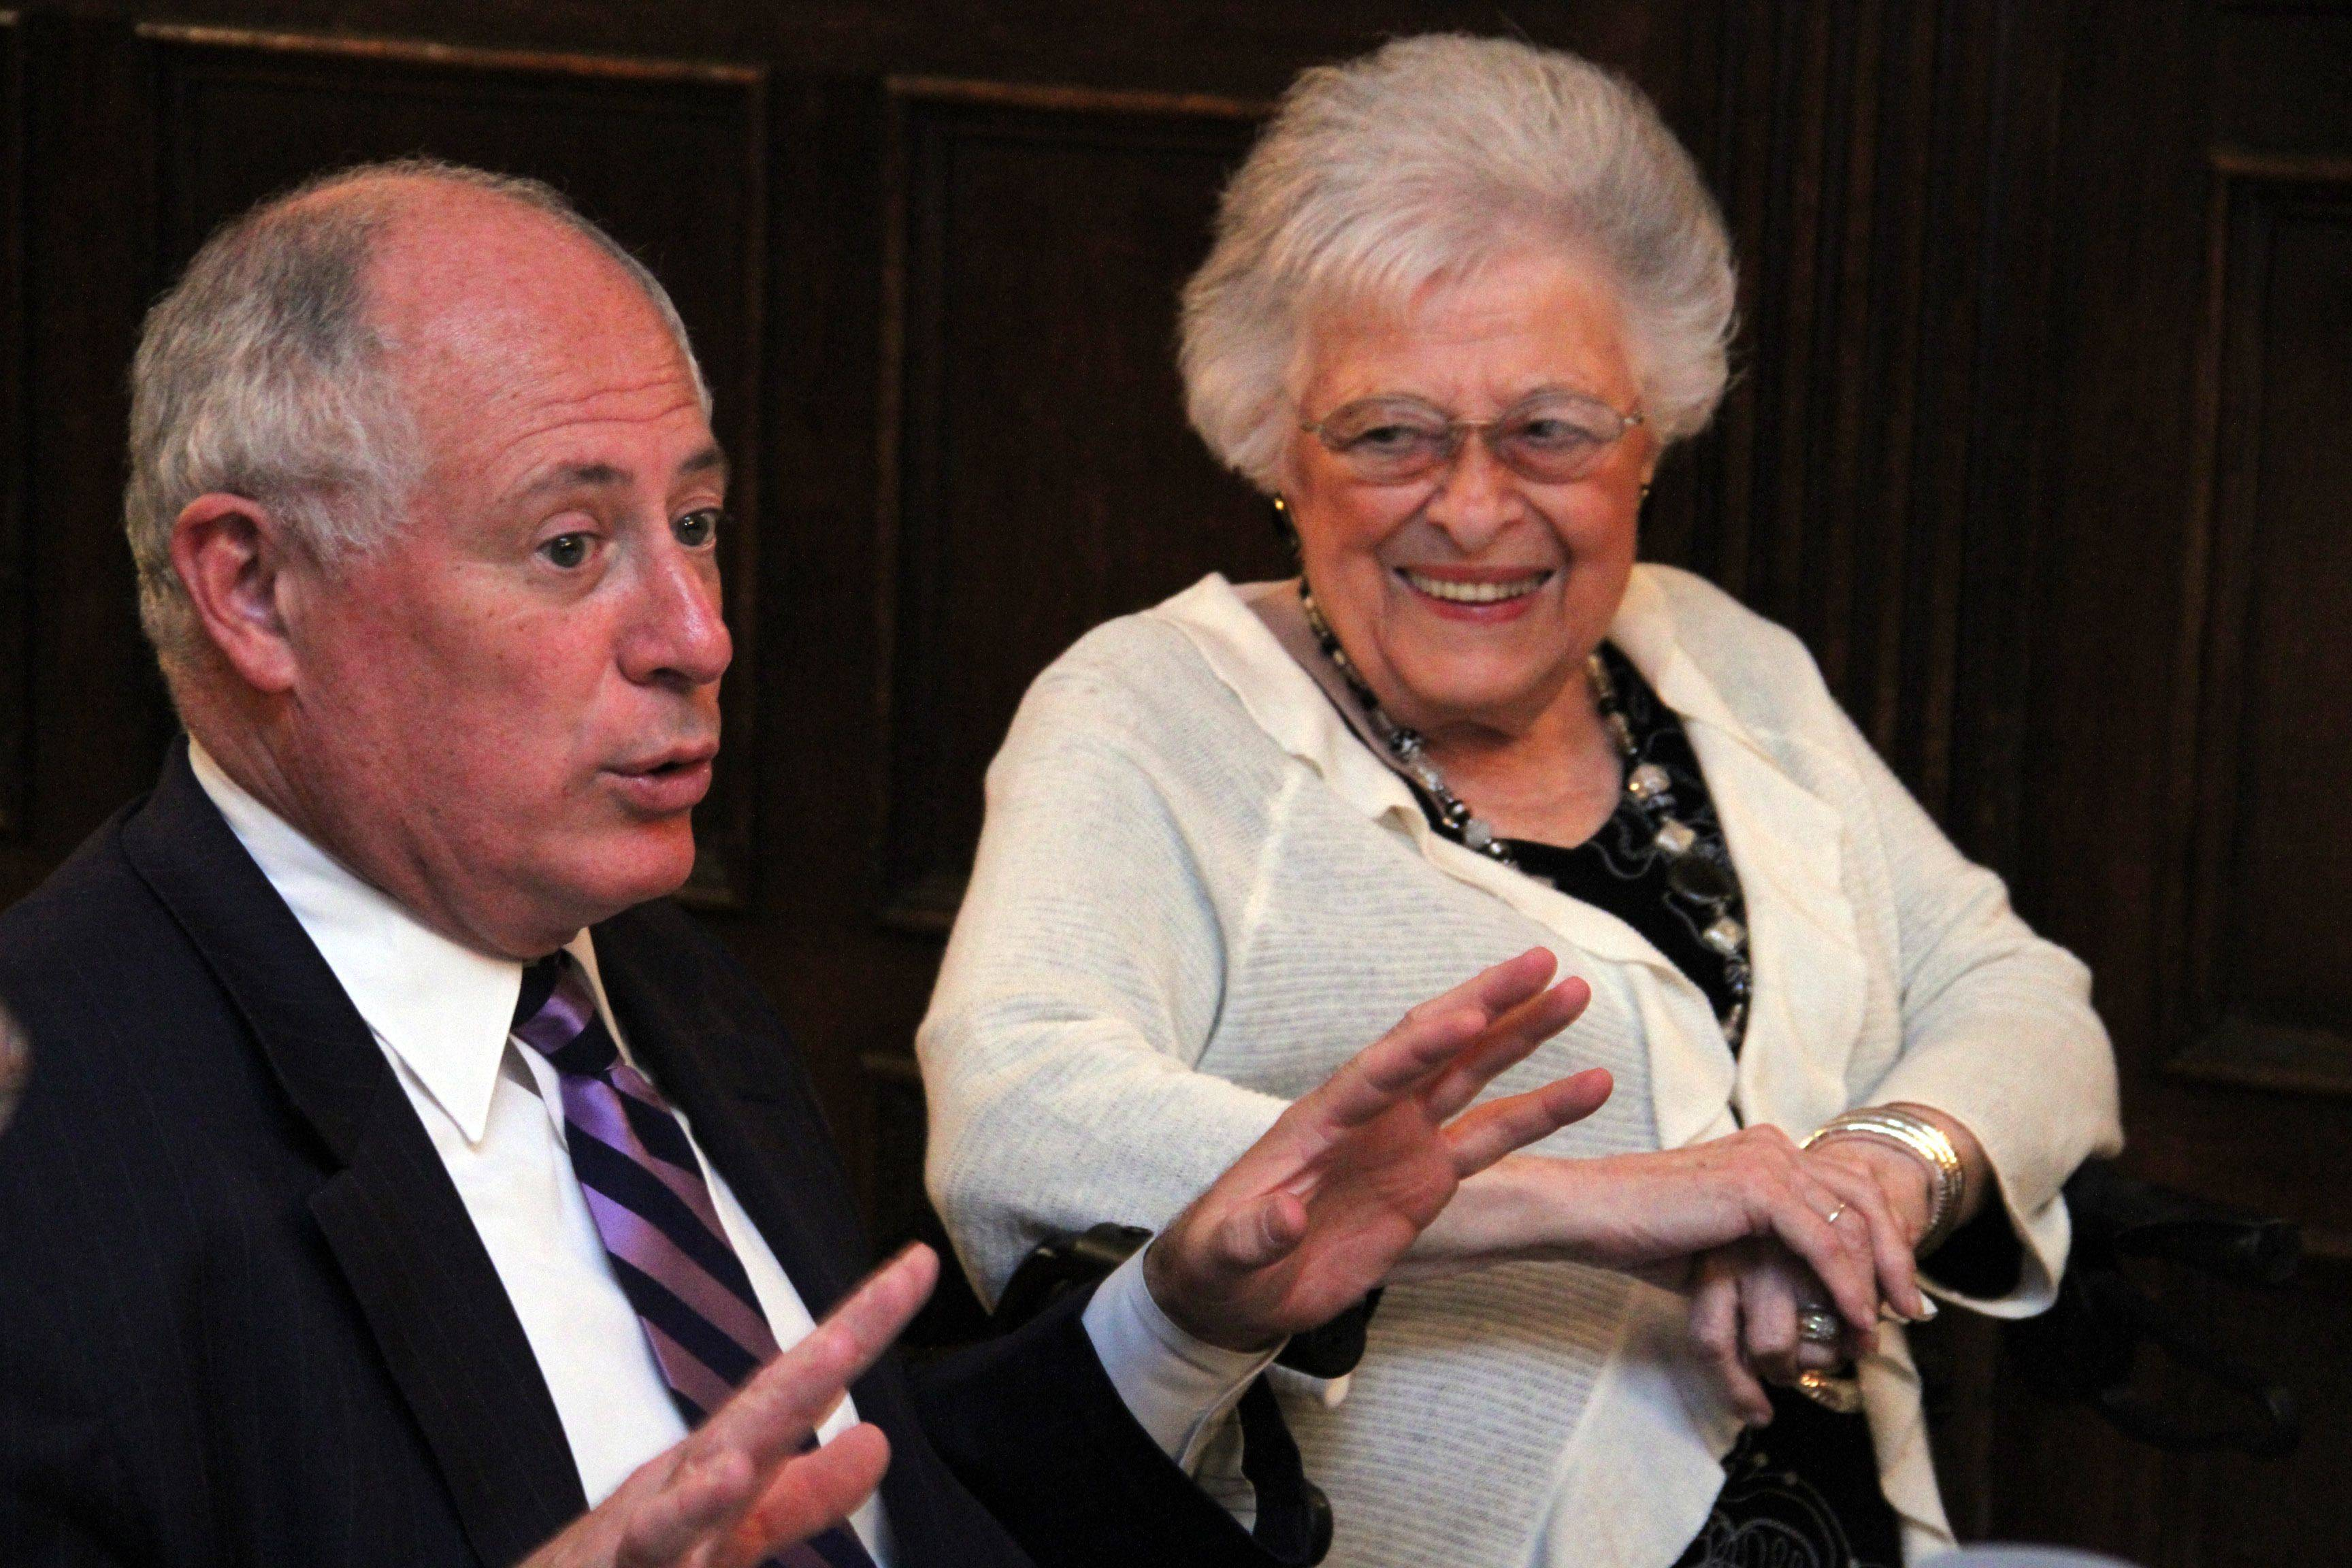 Pat Quinn and his mother, Eileen, talk about his childhood and career during an interview at the Palmer House Hilton in Chicago. For more on the force that Quinn's mom has been in his life, see Page X.